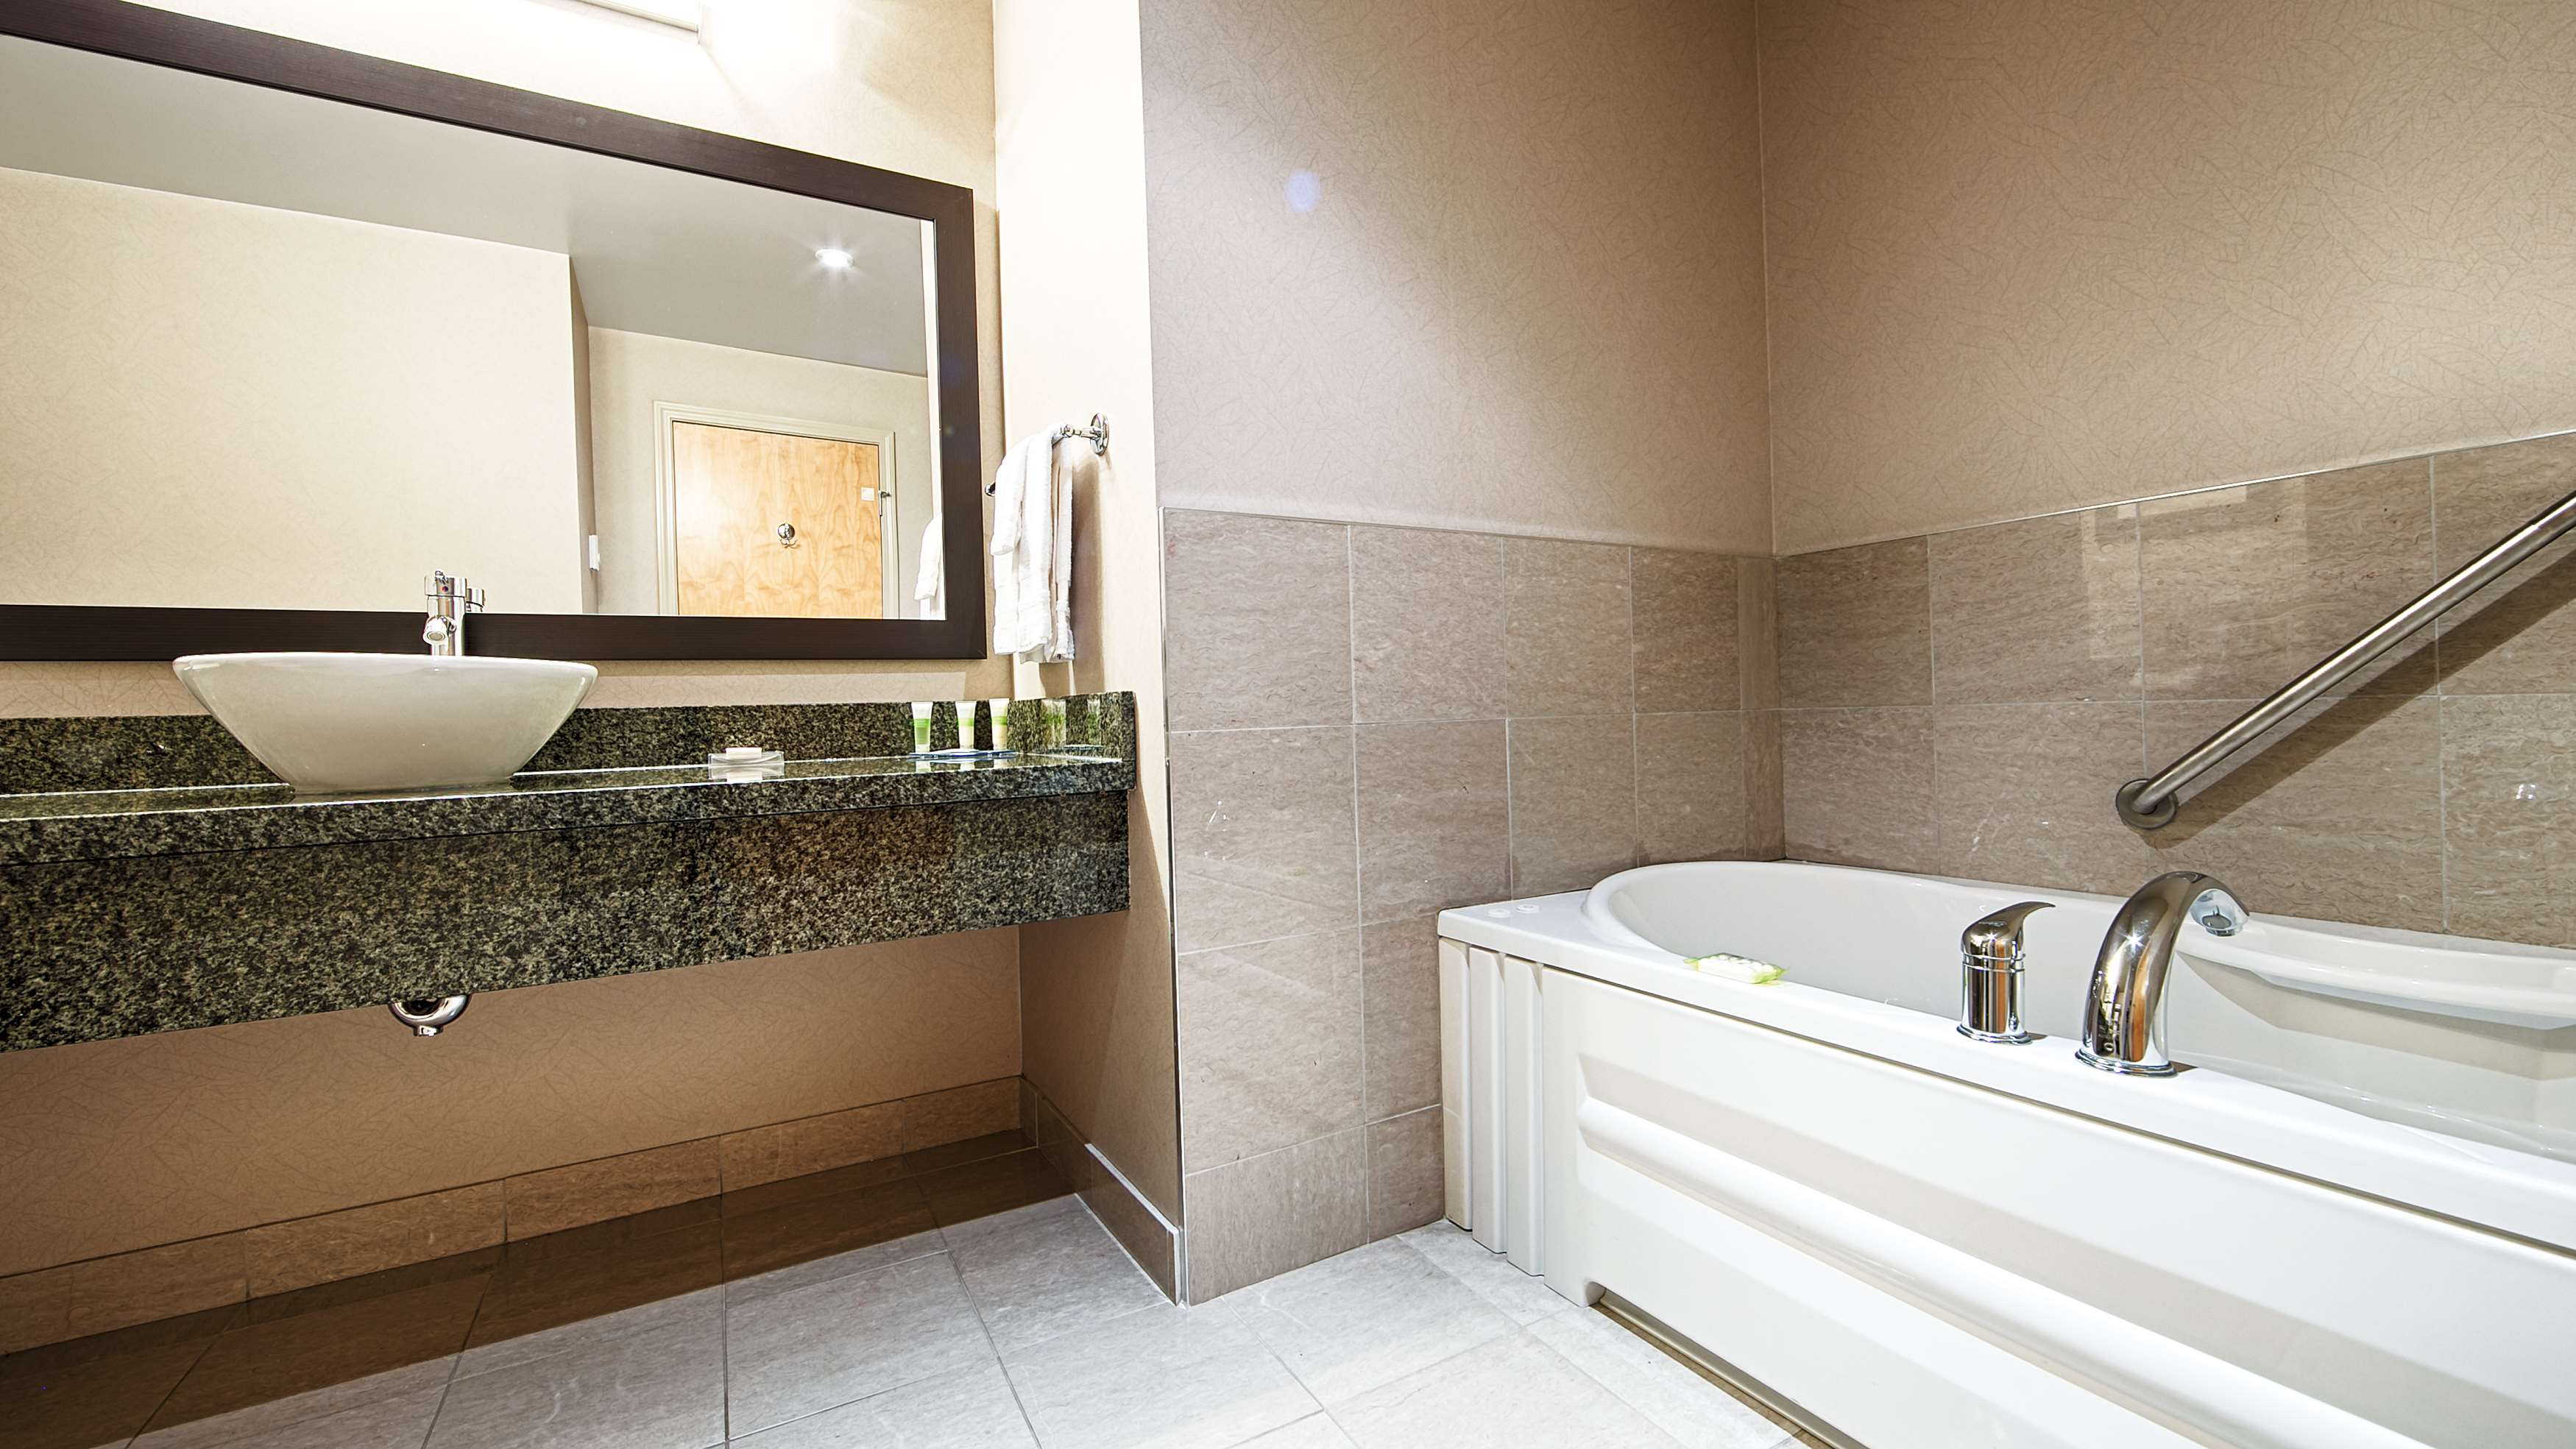 Best western plus perth parkside inn spa perth on ourbis for Parkside guest house bath